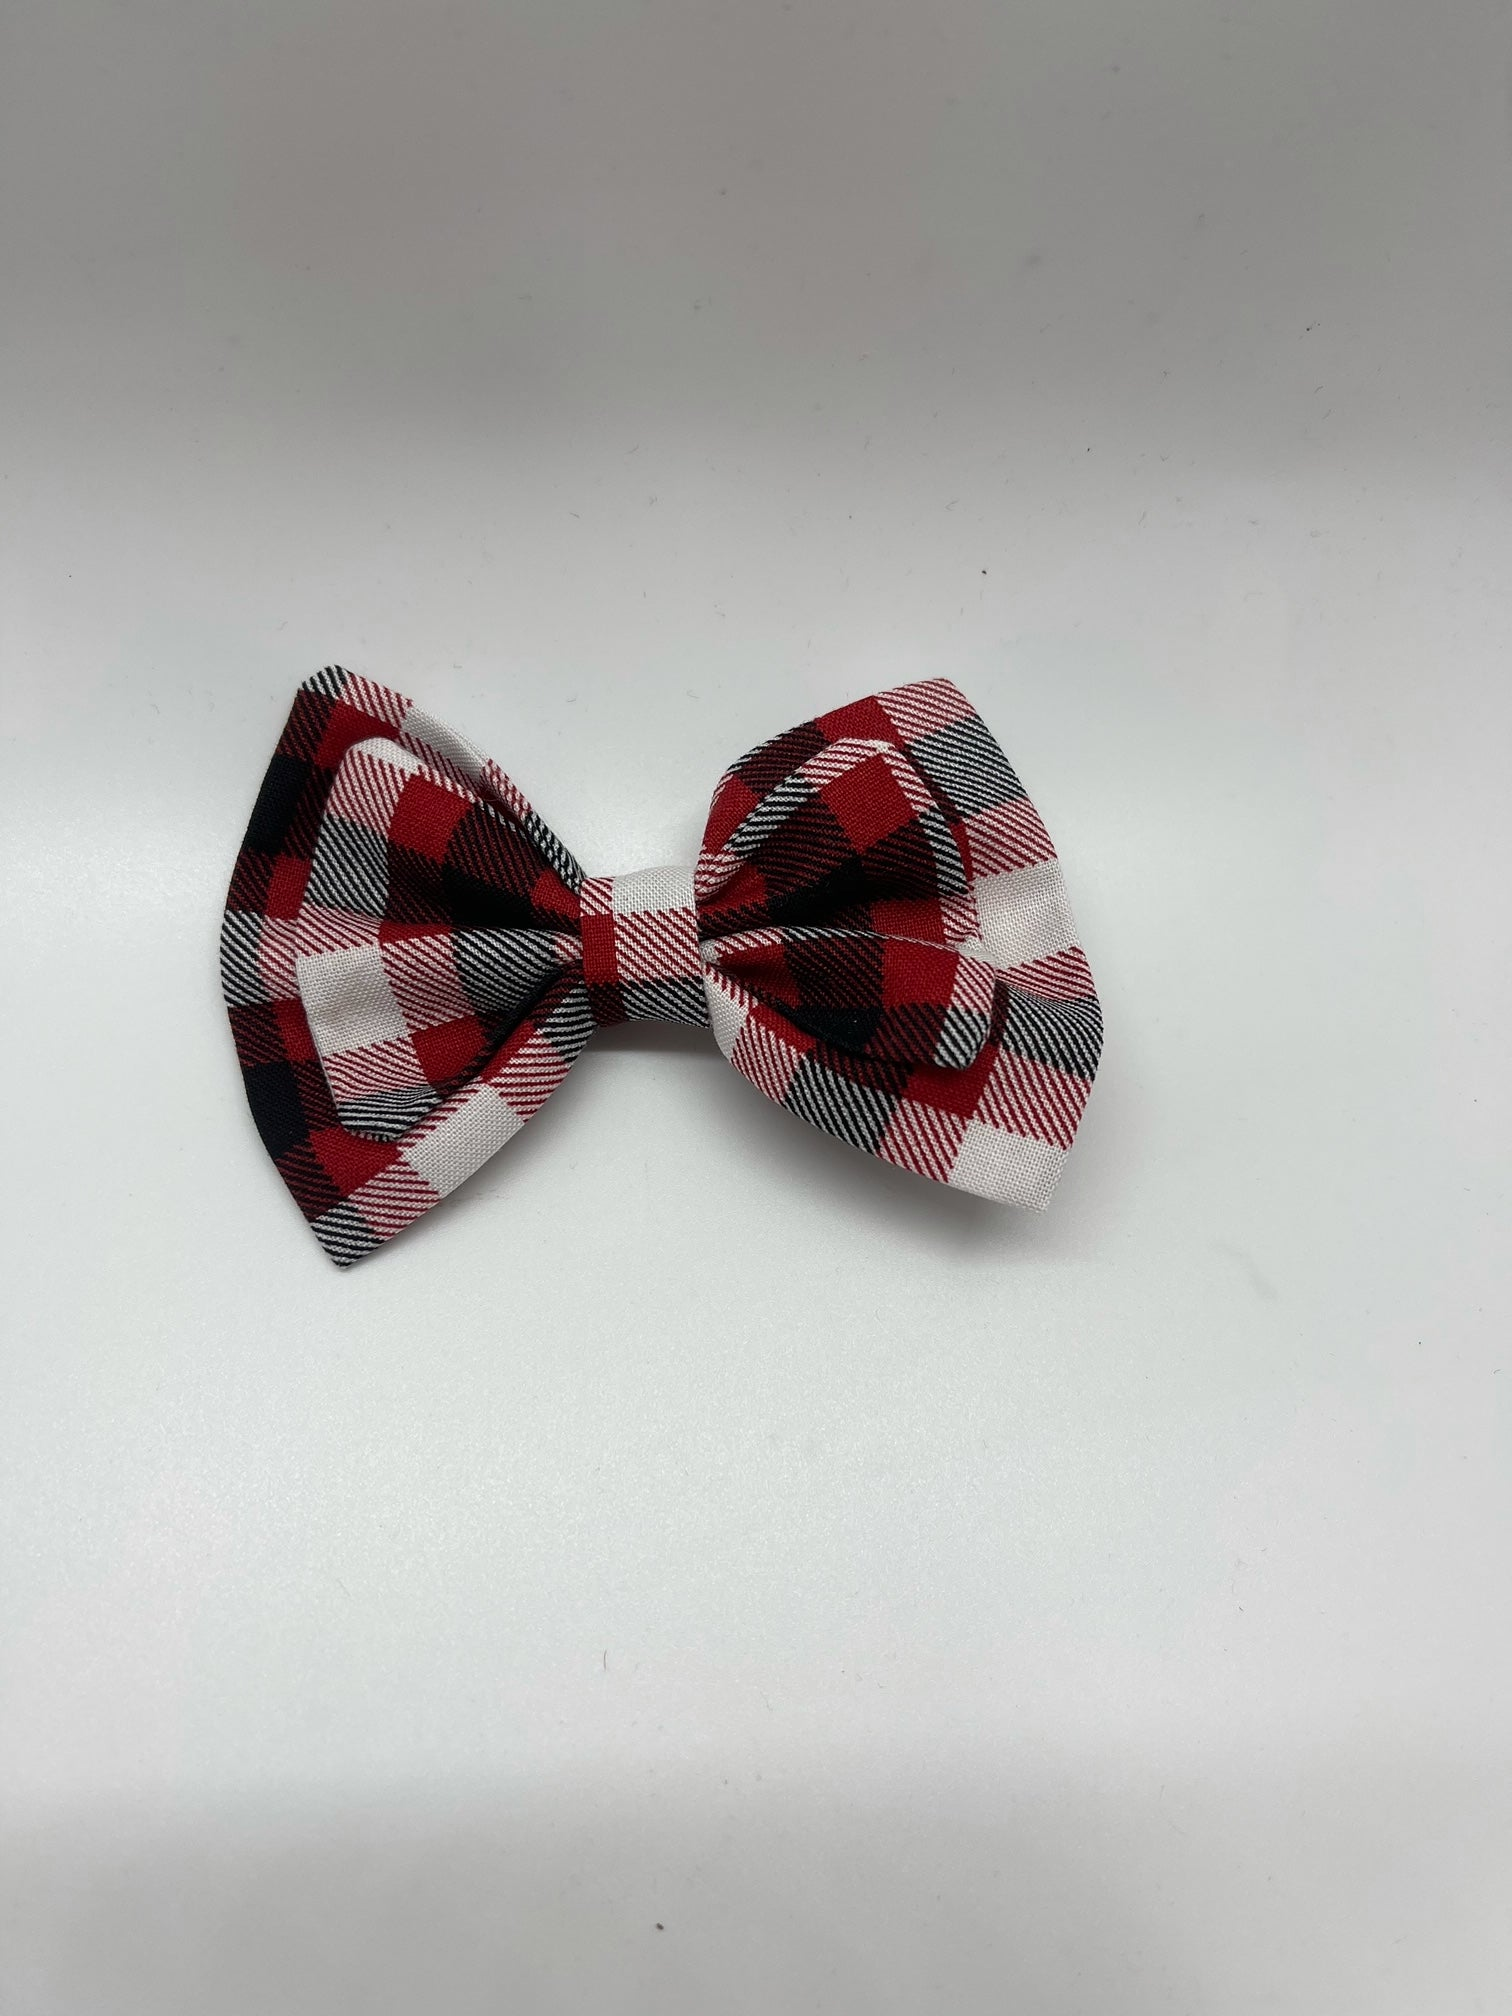 WALNUT STREET TREASURES - RED/BLACK/WHITE CHECK